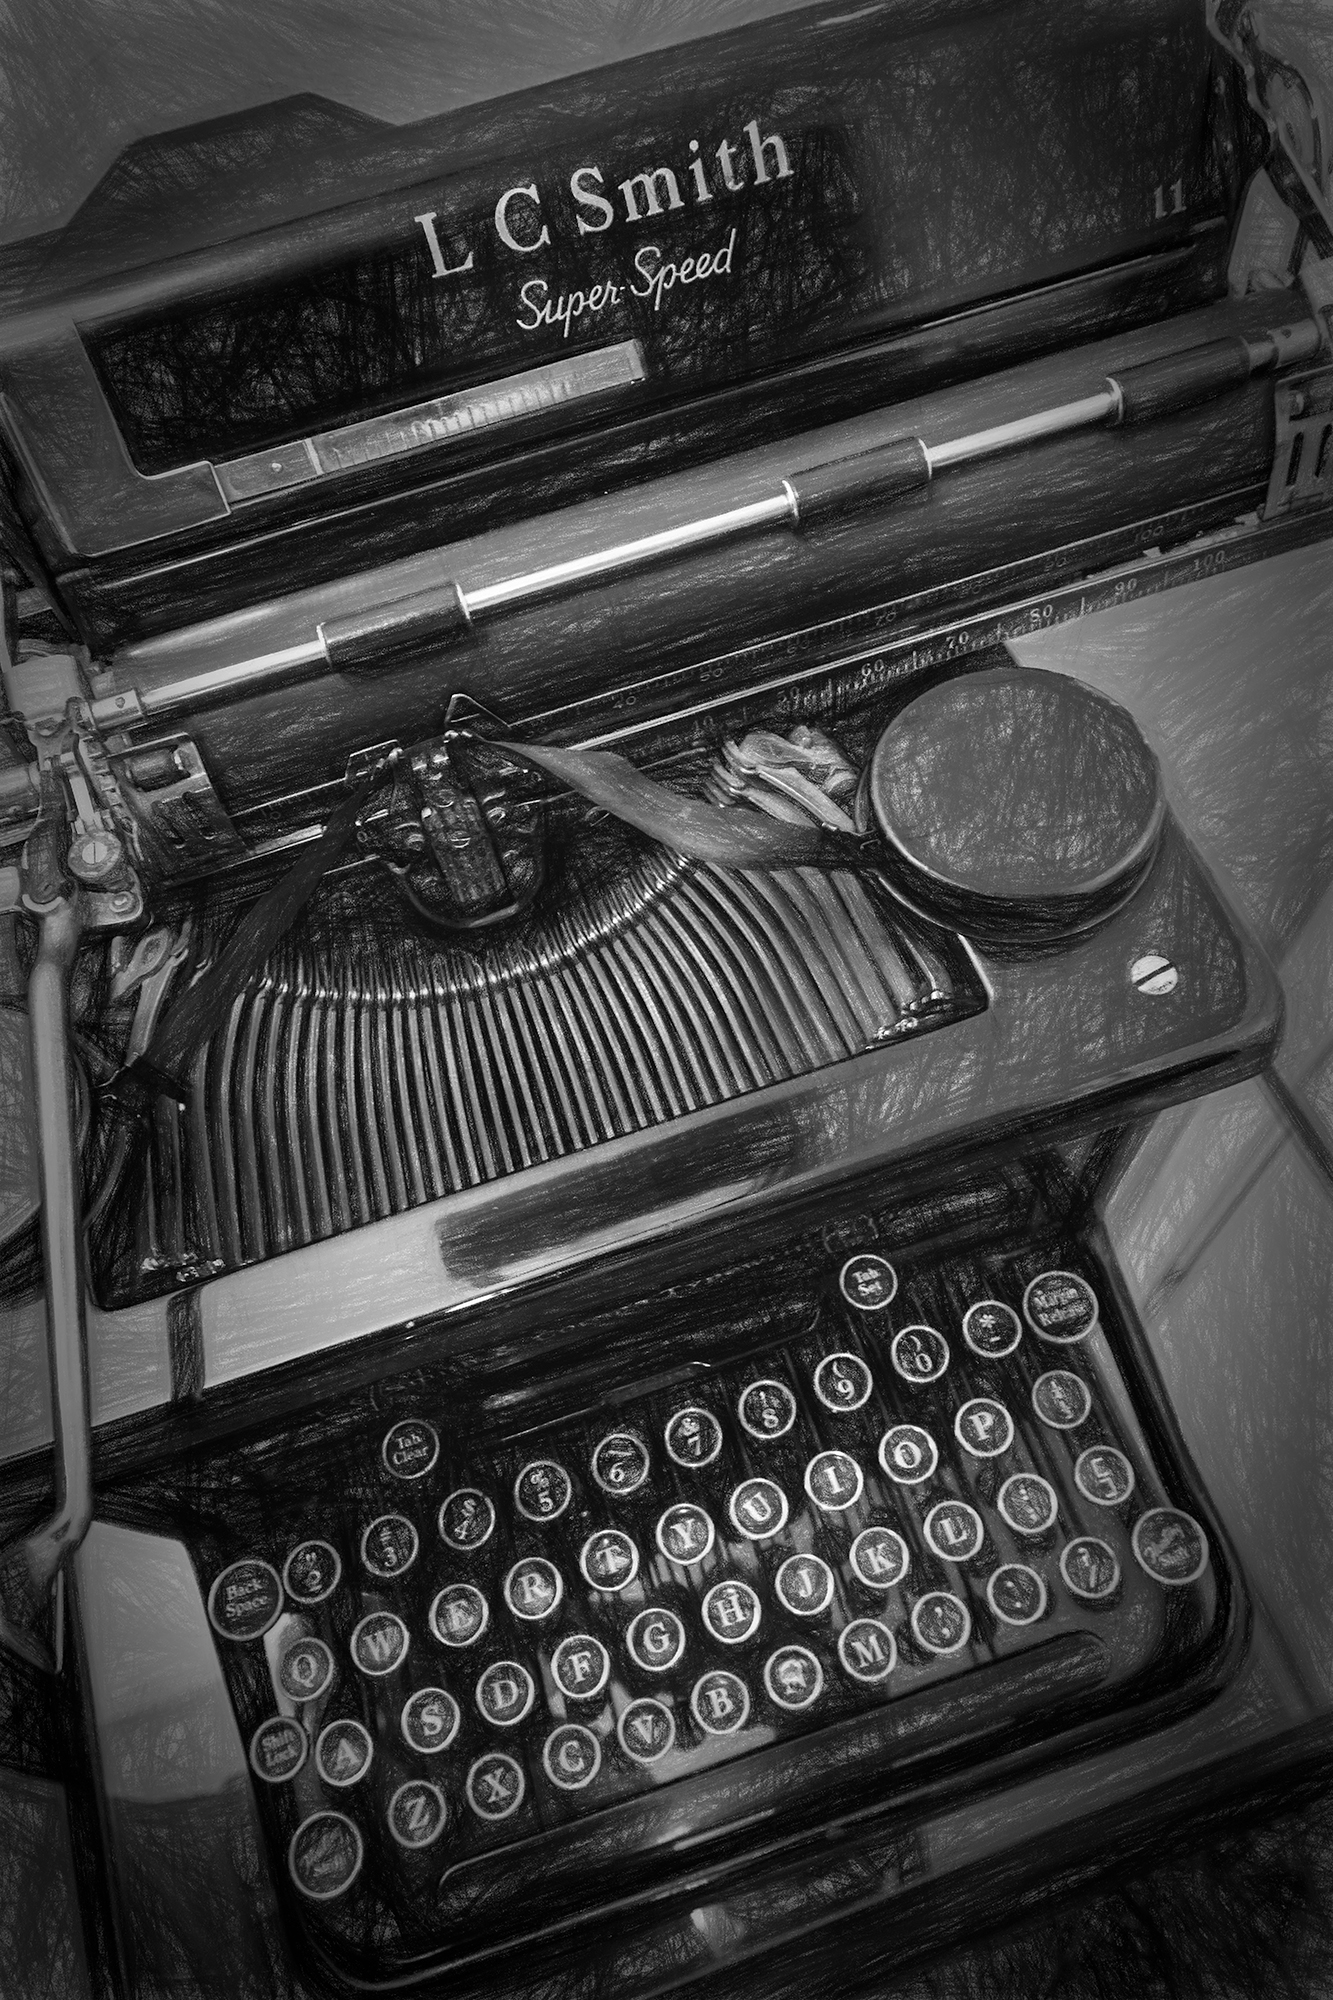 Writing Machine. Hotel Boulderado, Boulder, Colorado, 2016